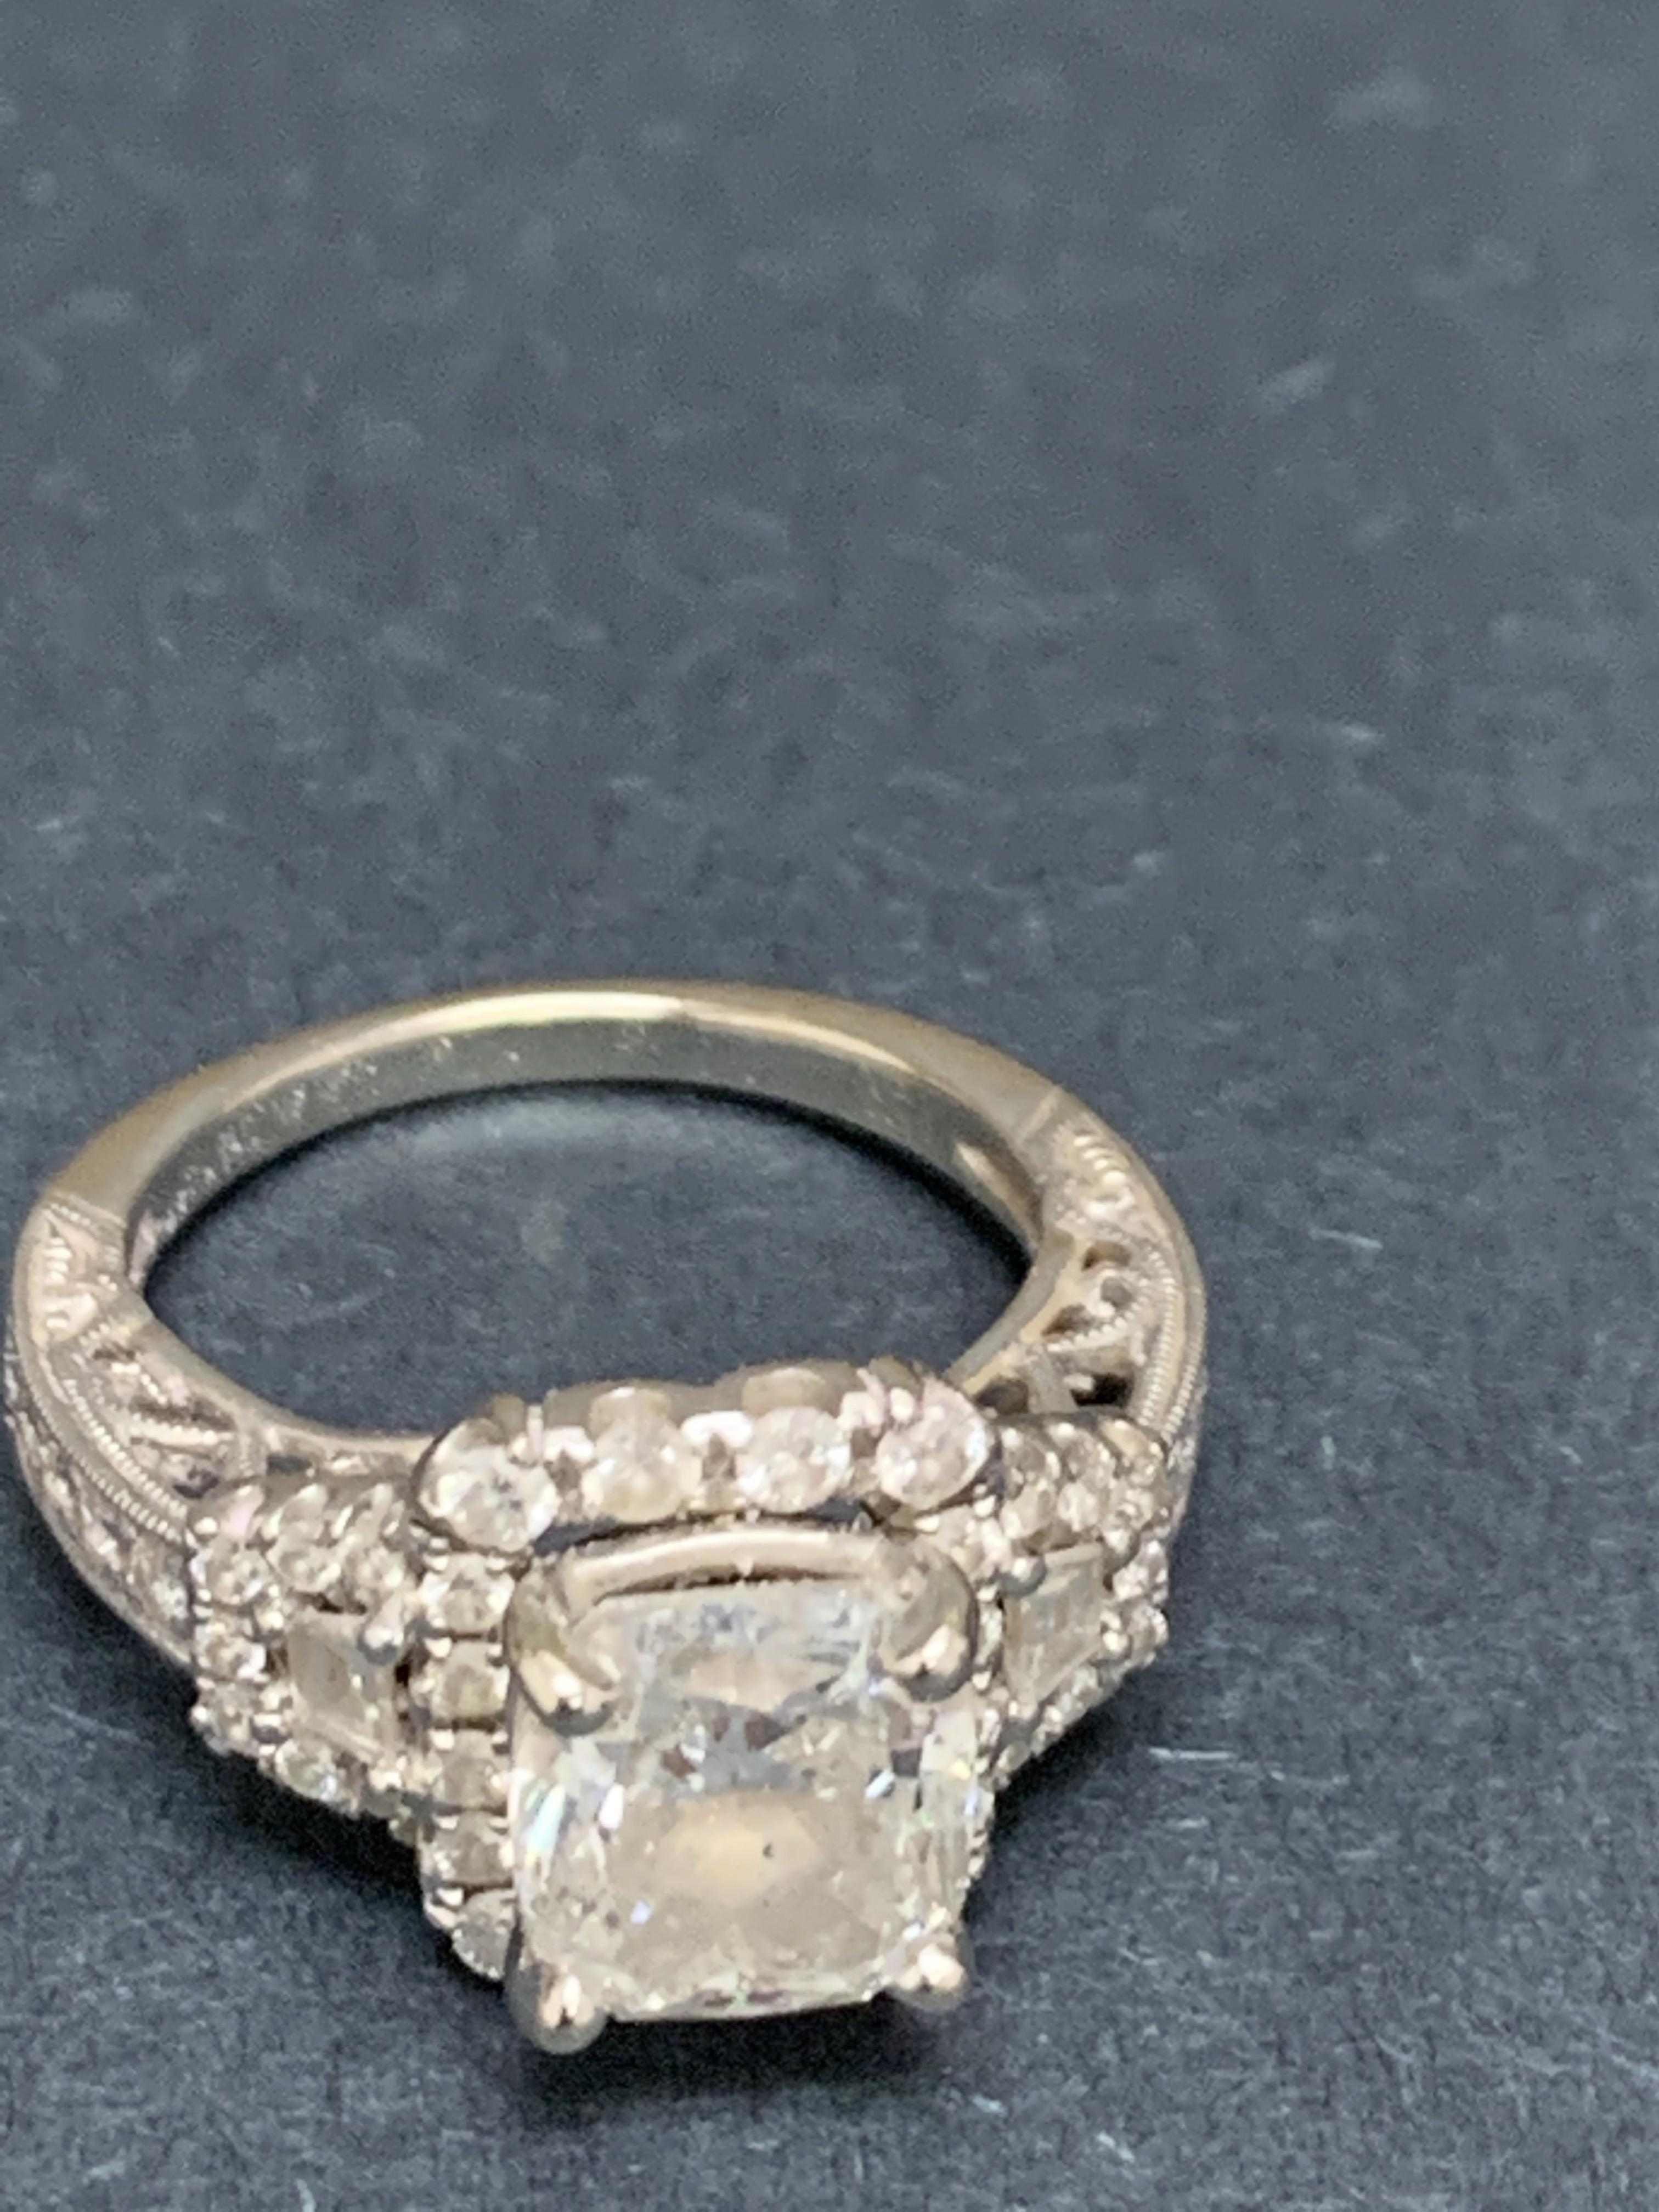 It is just a photo of Shane & Co Beautiful and intricate diamond engagement ring with center stone over 500.50 carats